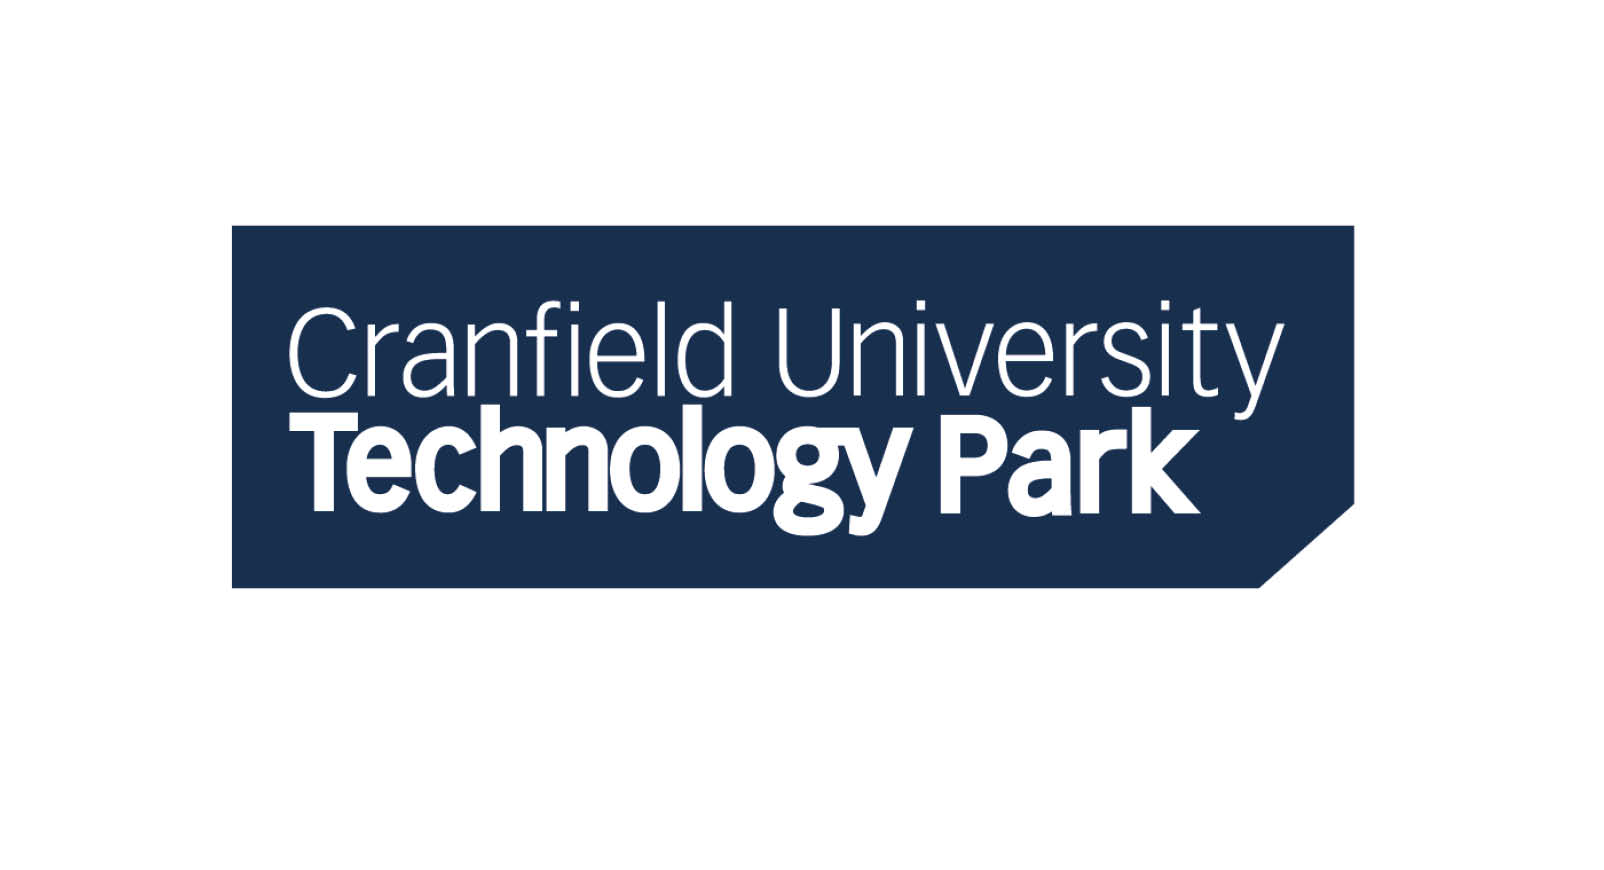 Cranfield University Technology Park